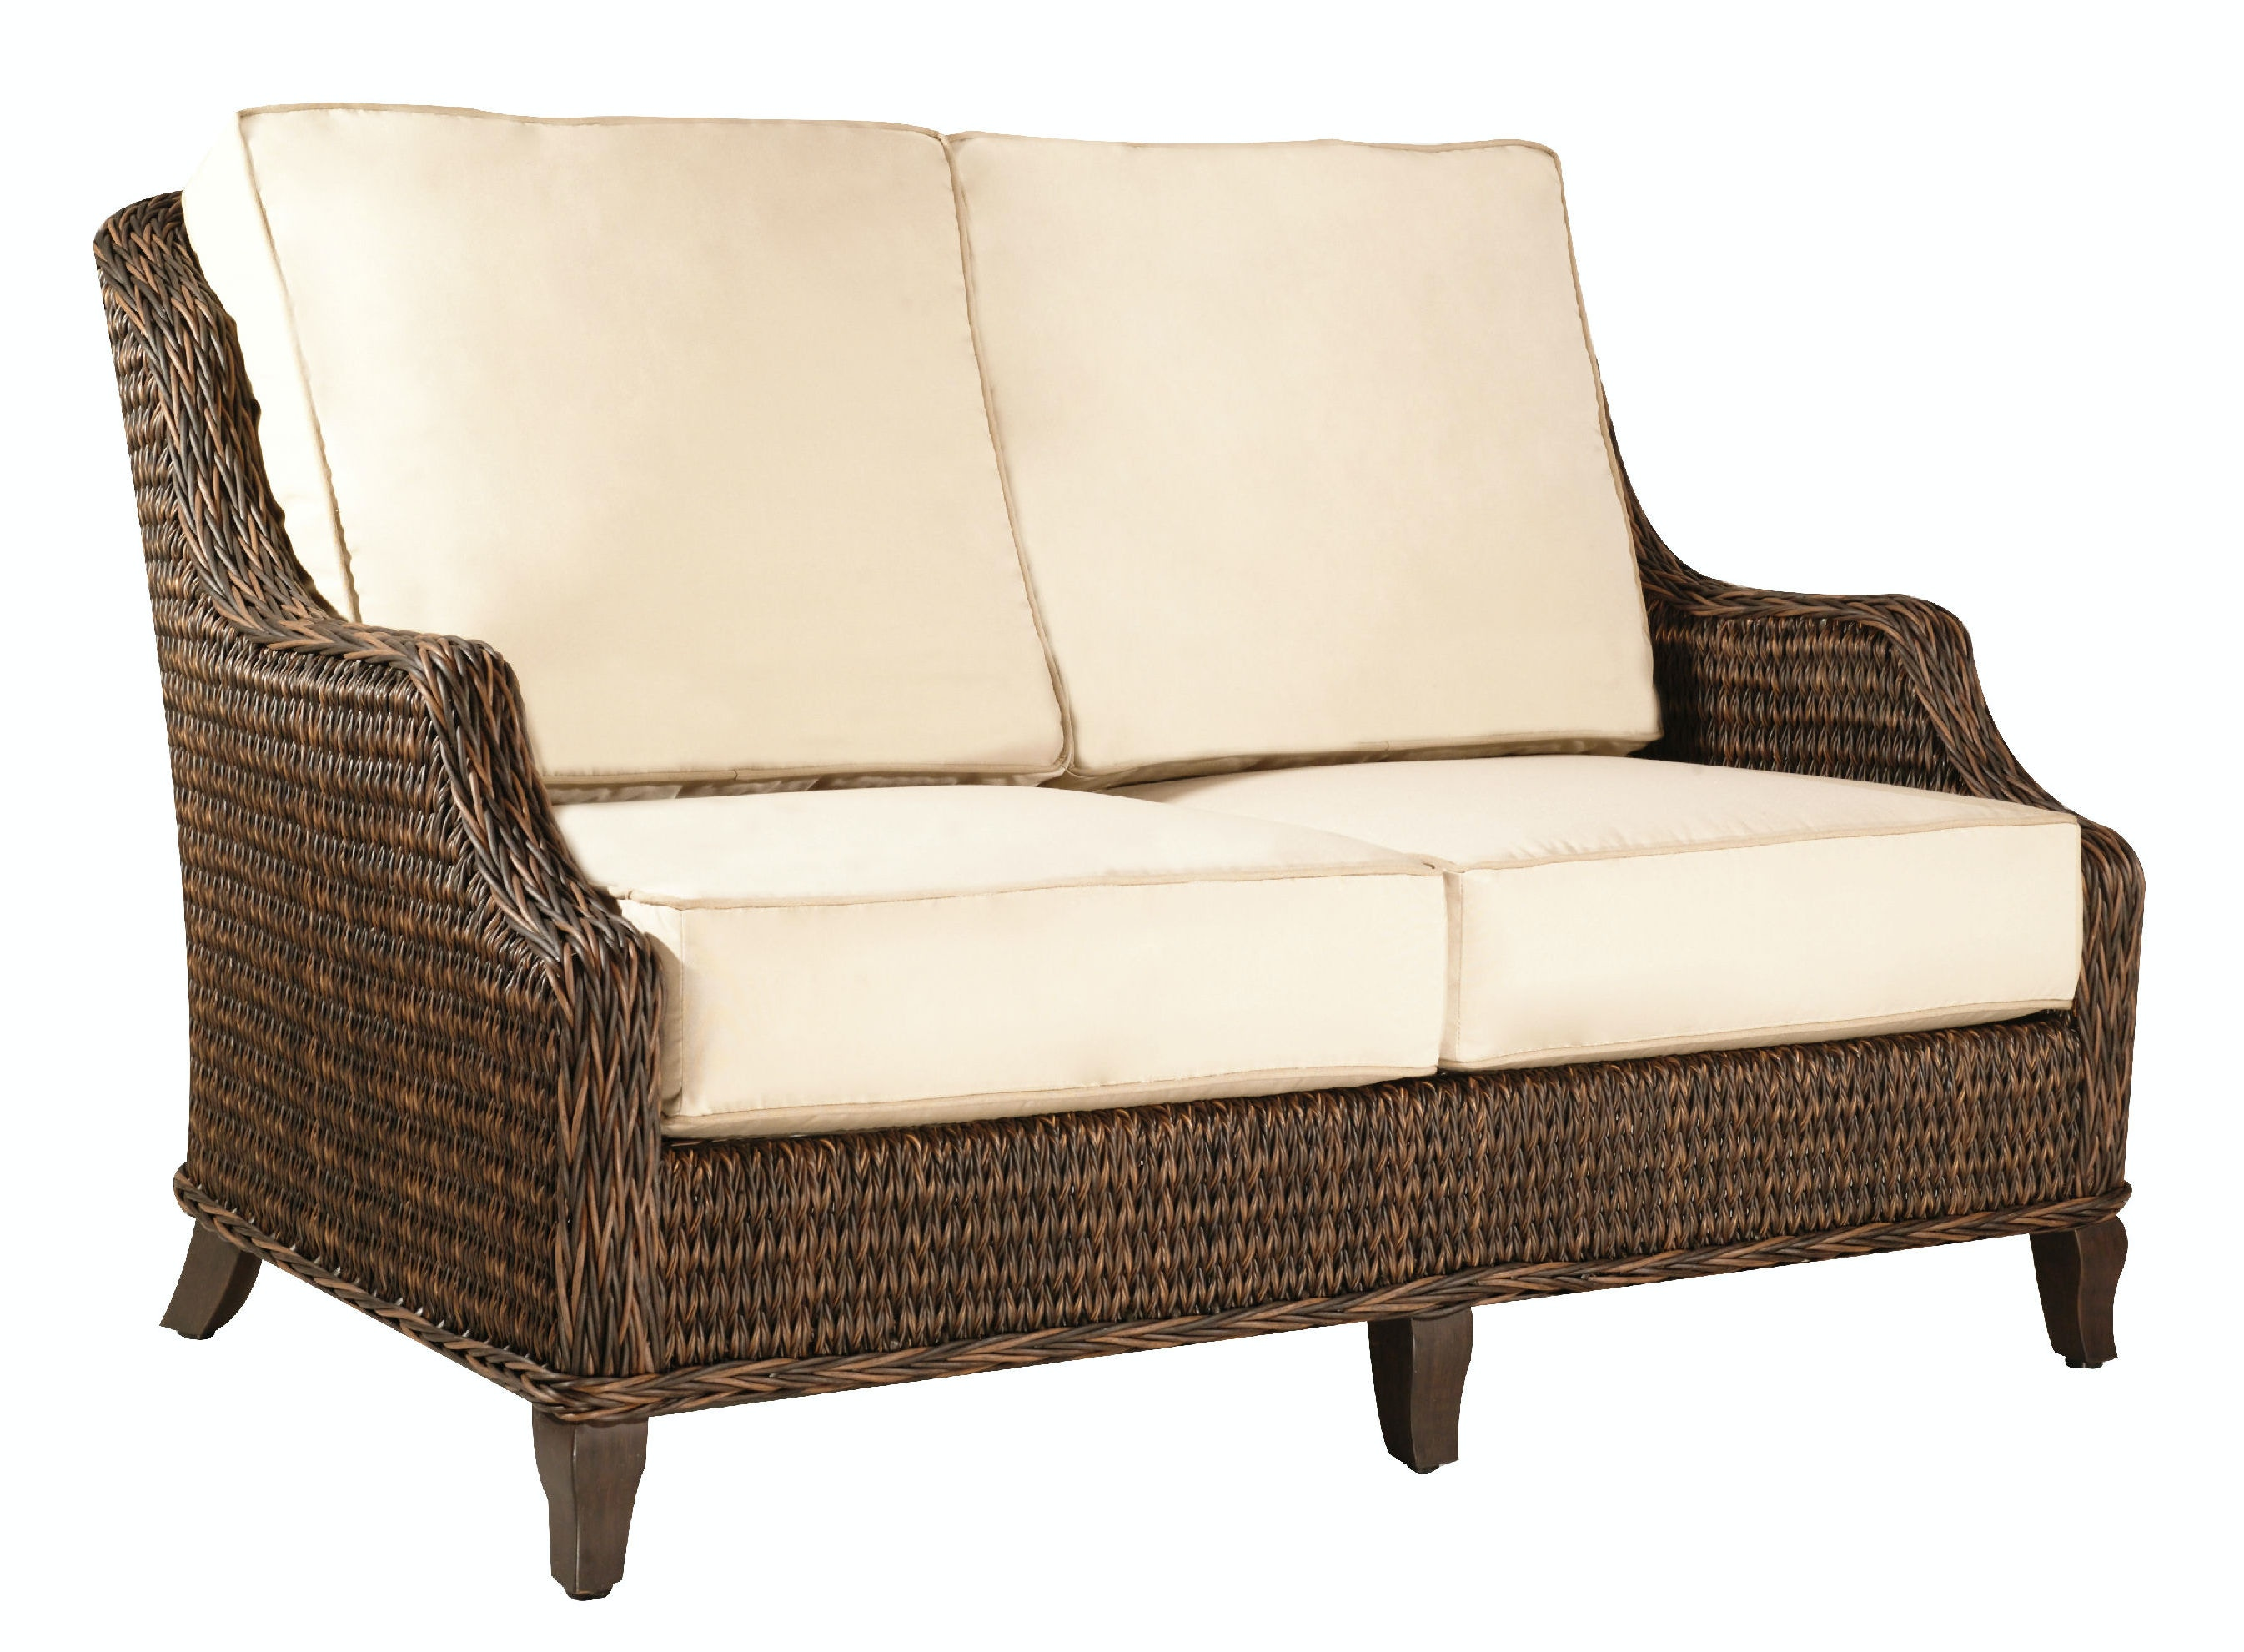 Fire House Casual Monticello Loveseat L415 973061